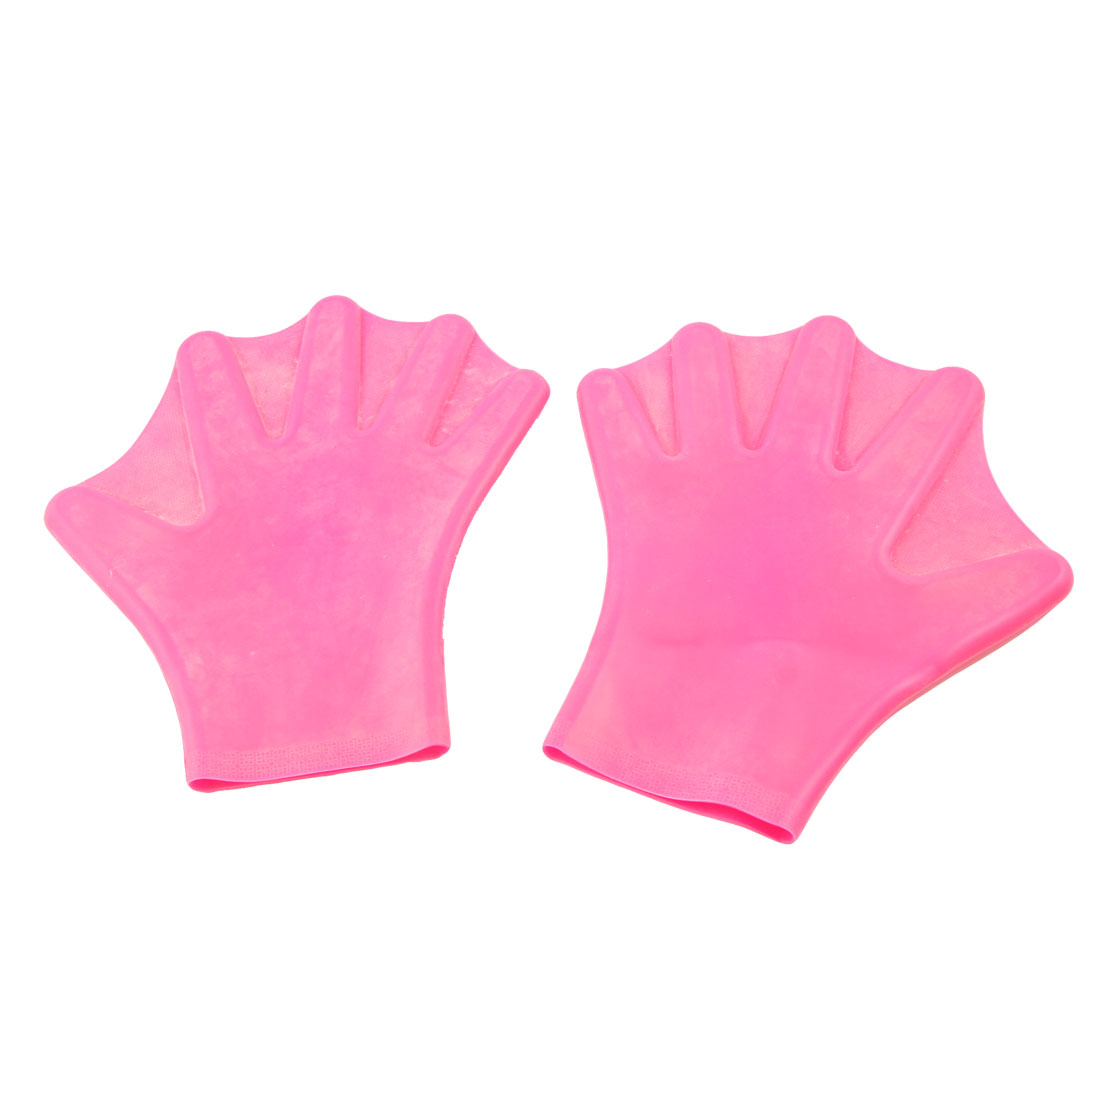 Unique Bargains Unique Bargains Men Women 2 Pcs Soft Silicone Swimming Diving Webbed Hand Gloves Fuchsia by Unique-Bargains